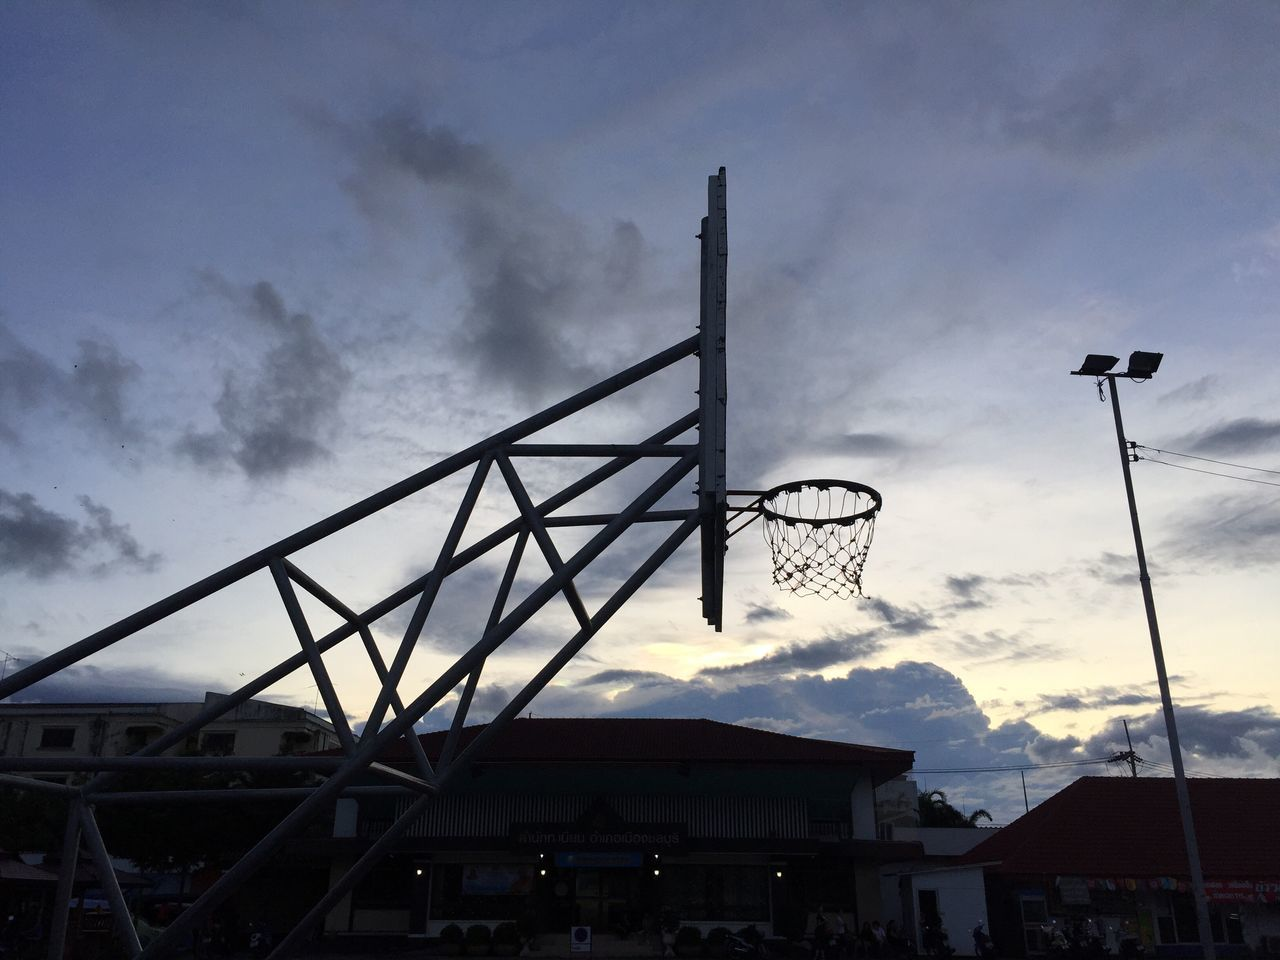 cloud - sky, sky, low angle view, built structure, architecture, outdoors, silhouette, no people, day, building exterior, basketball hoop, basketball - sport